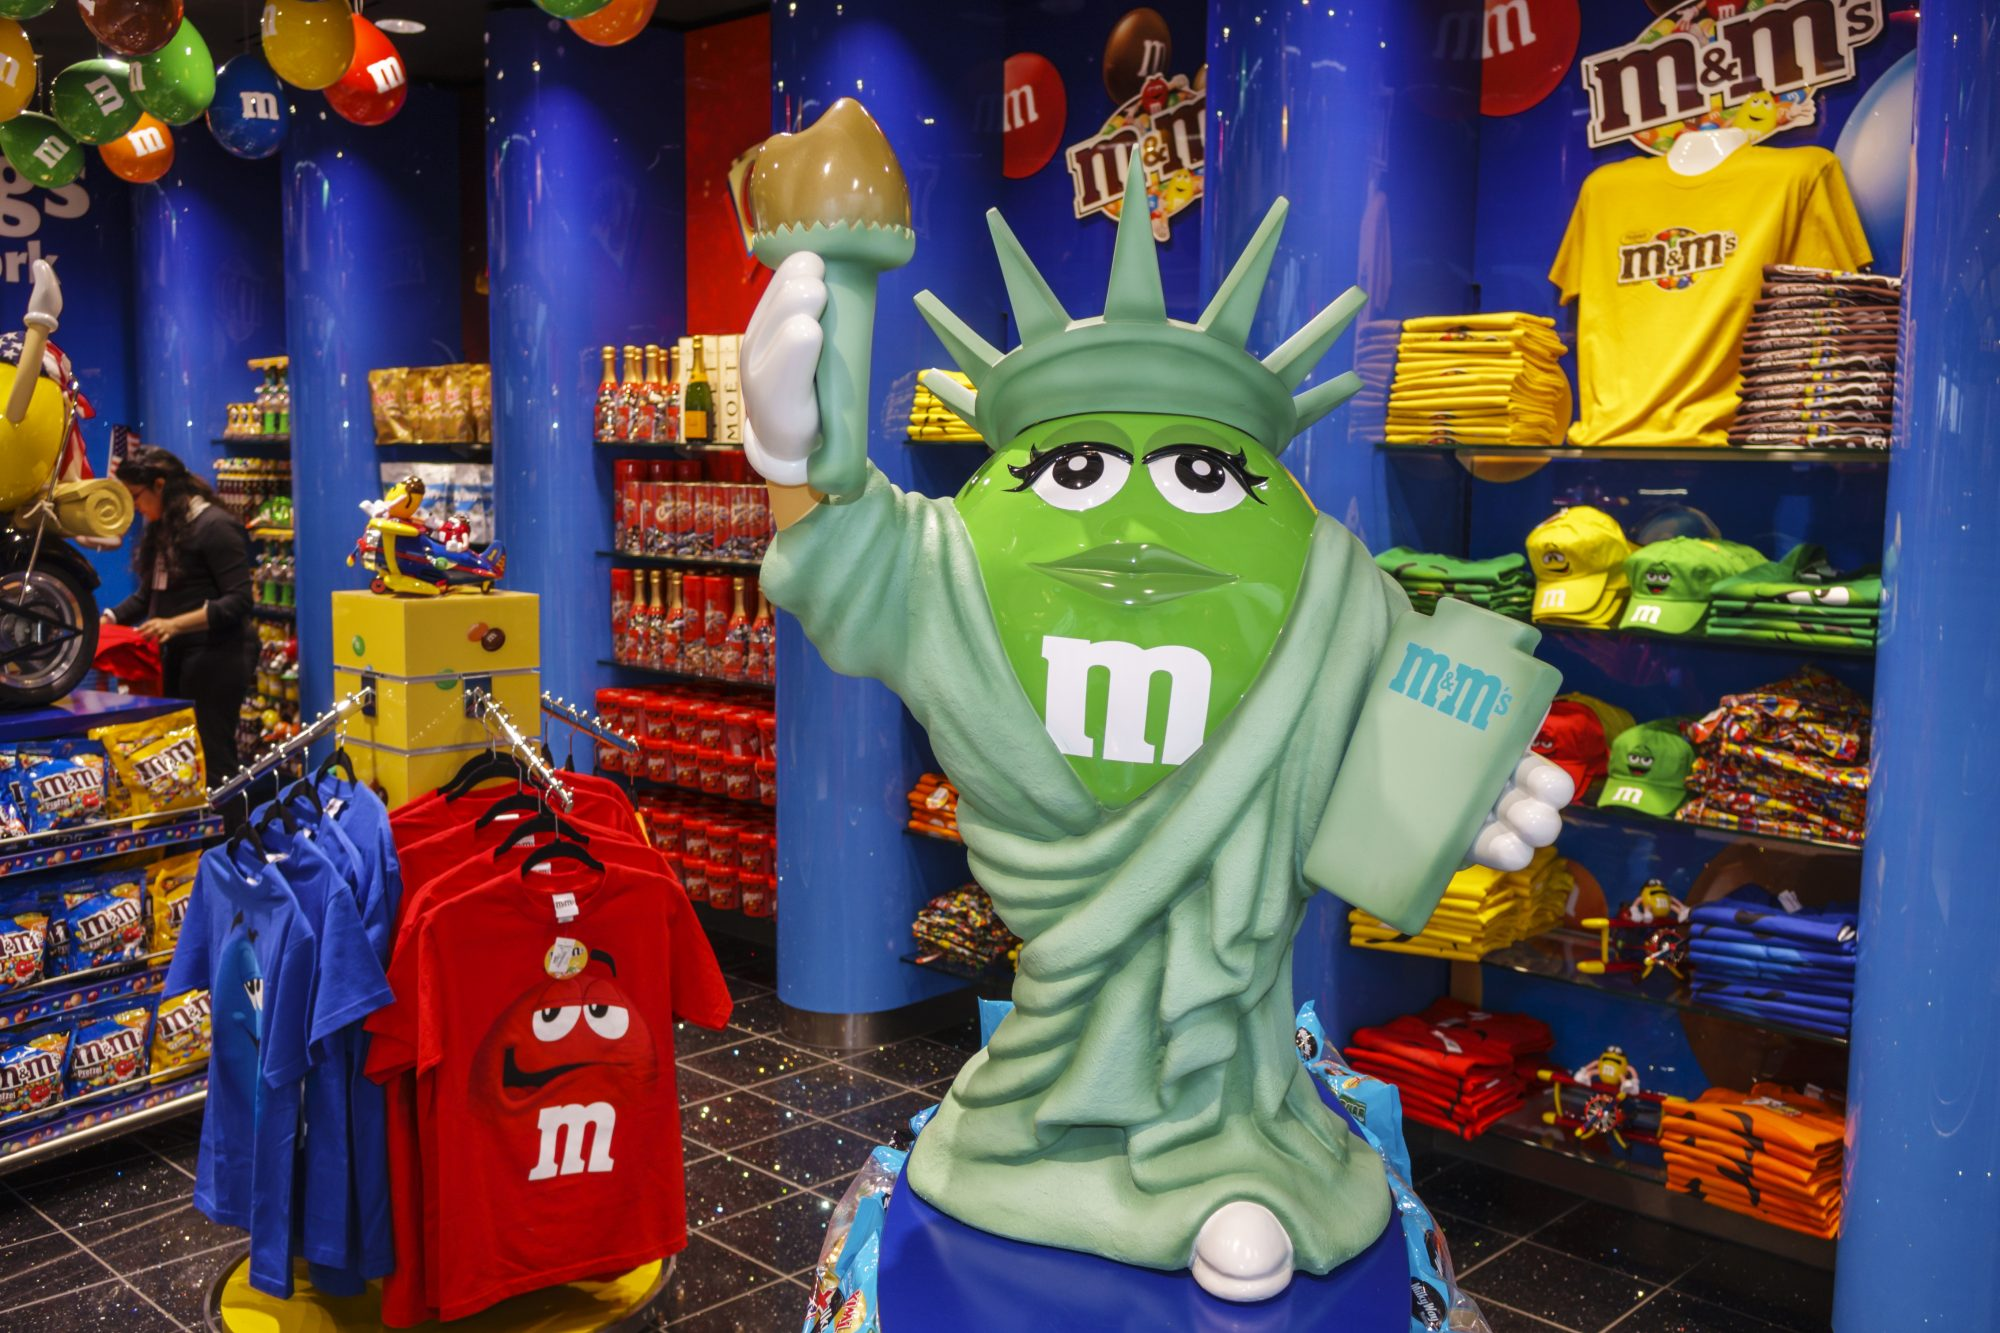 Mexican Jalapeño, Anyone? Mars Introduces 3 New Peanut M&M's Flavors